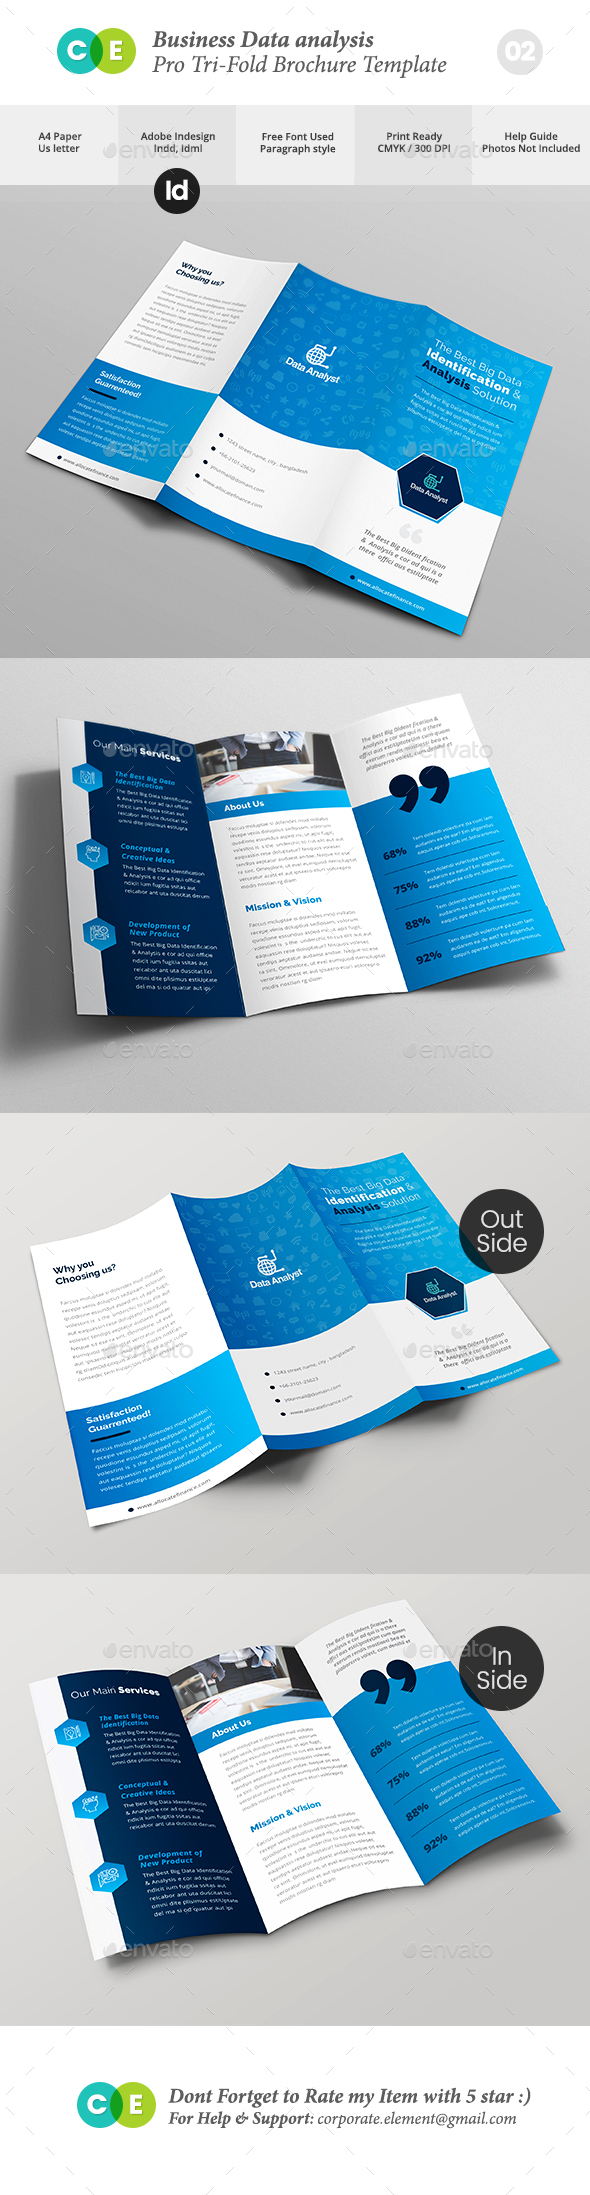 Pro Business Data Analysis Tri-fold Brochure V02 - Brochures Print Templates